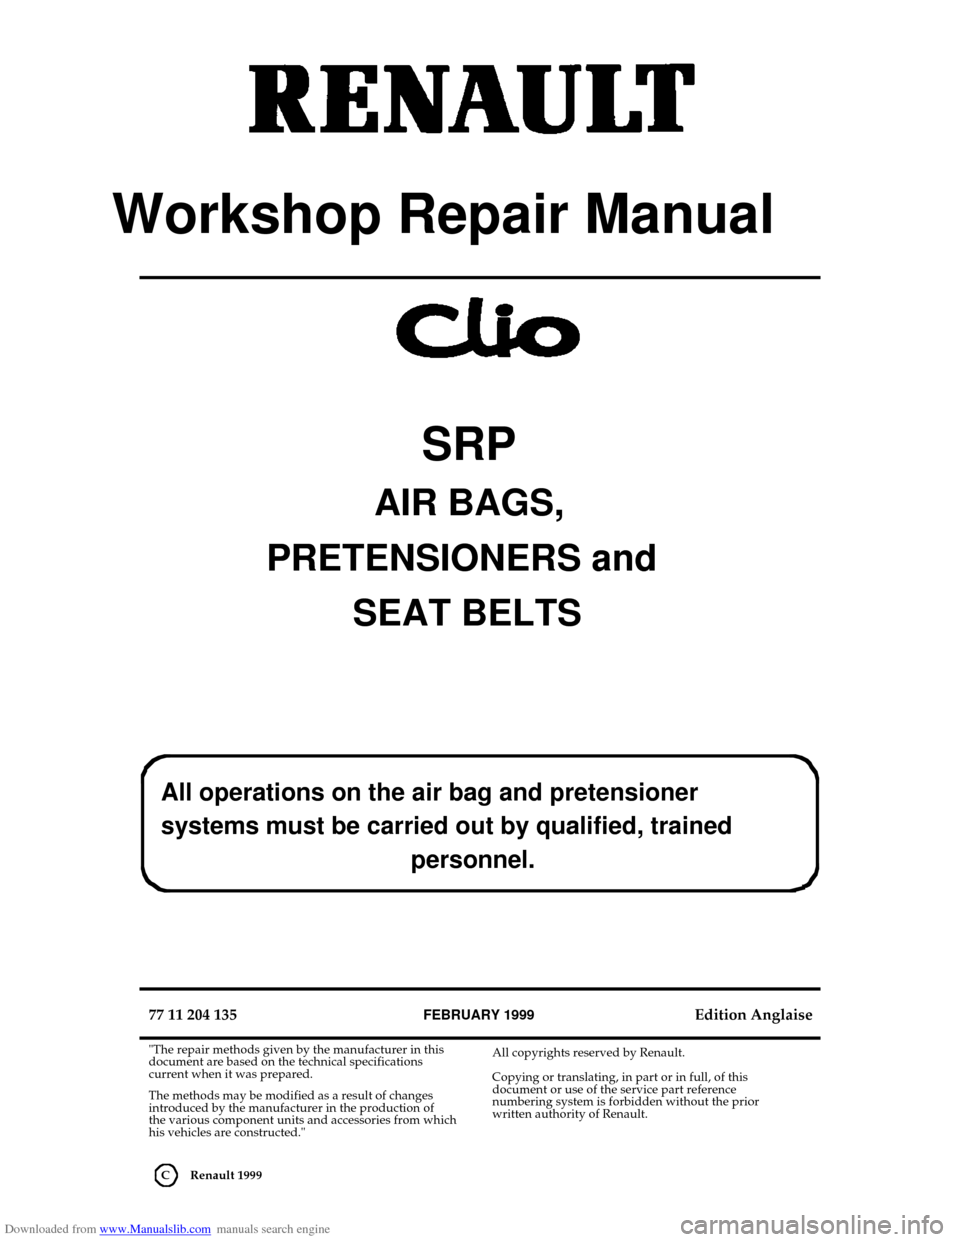 RENAULT CLIO 1999 X65 / 2.G Air Bag And Seat Belts Workshop Manual, Page 1